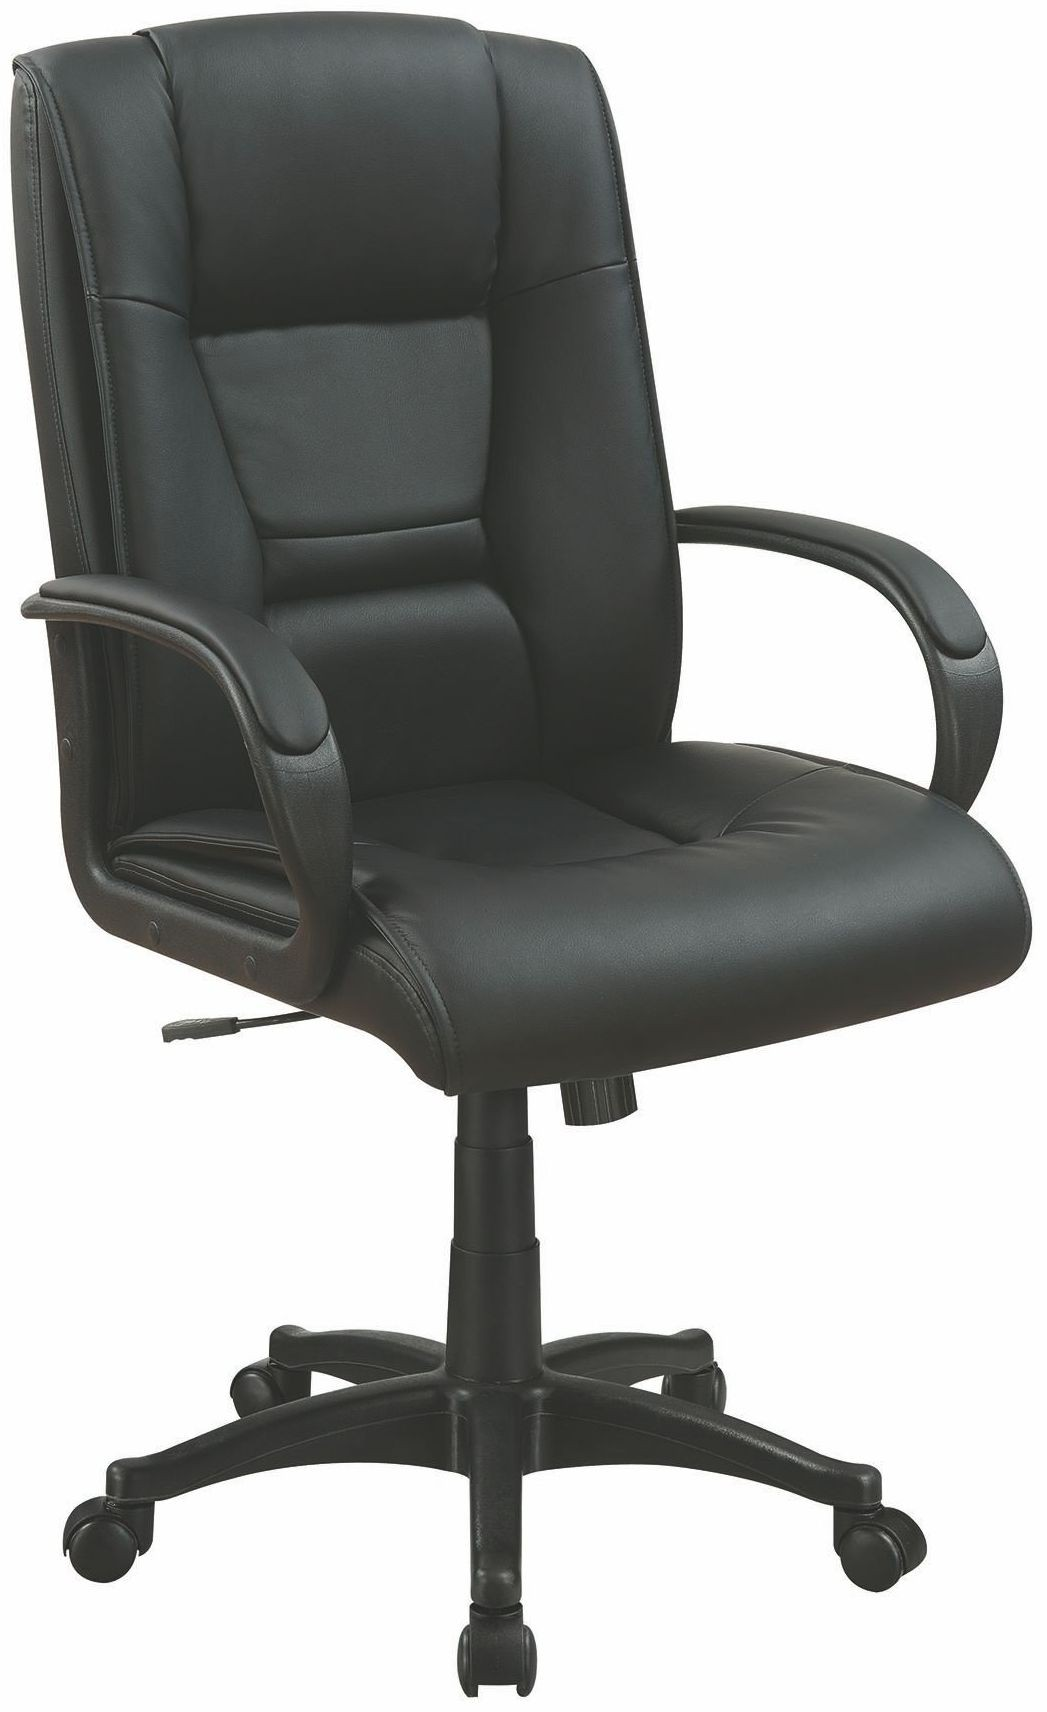 Black Vinyl Office Chair from Coaster | Coleman Furniture